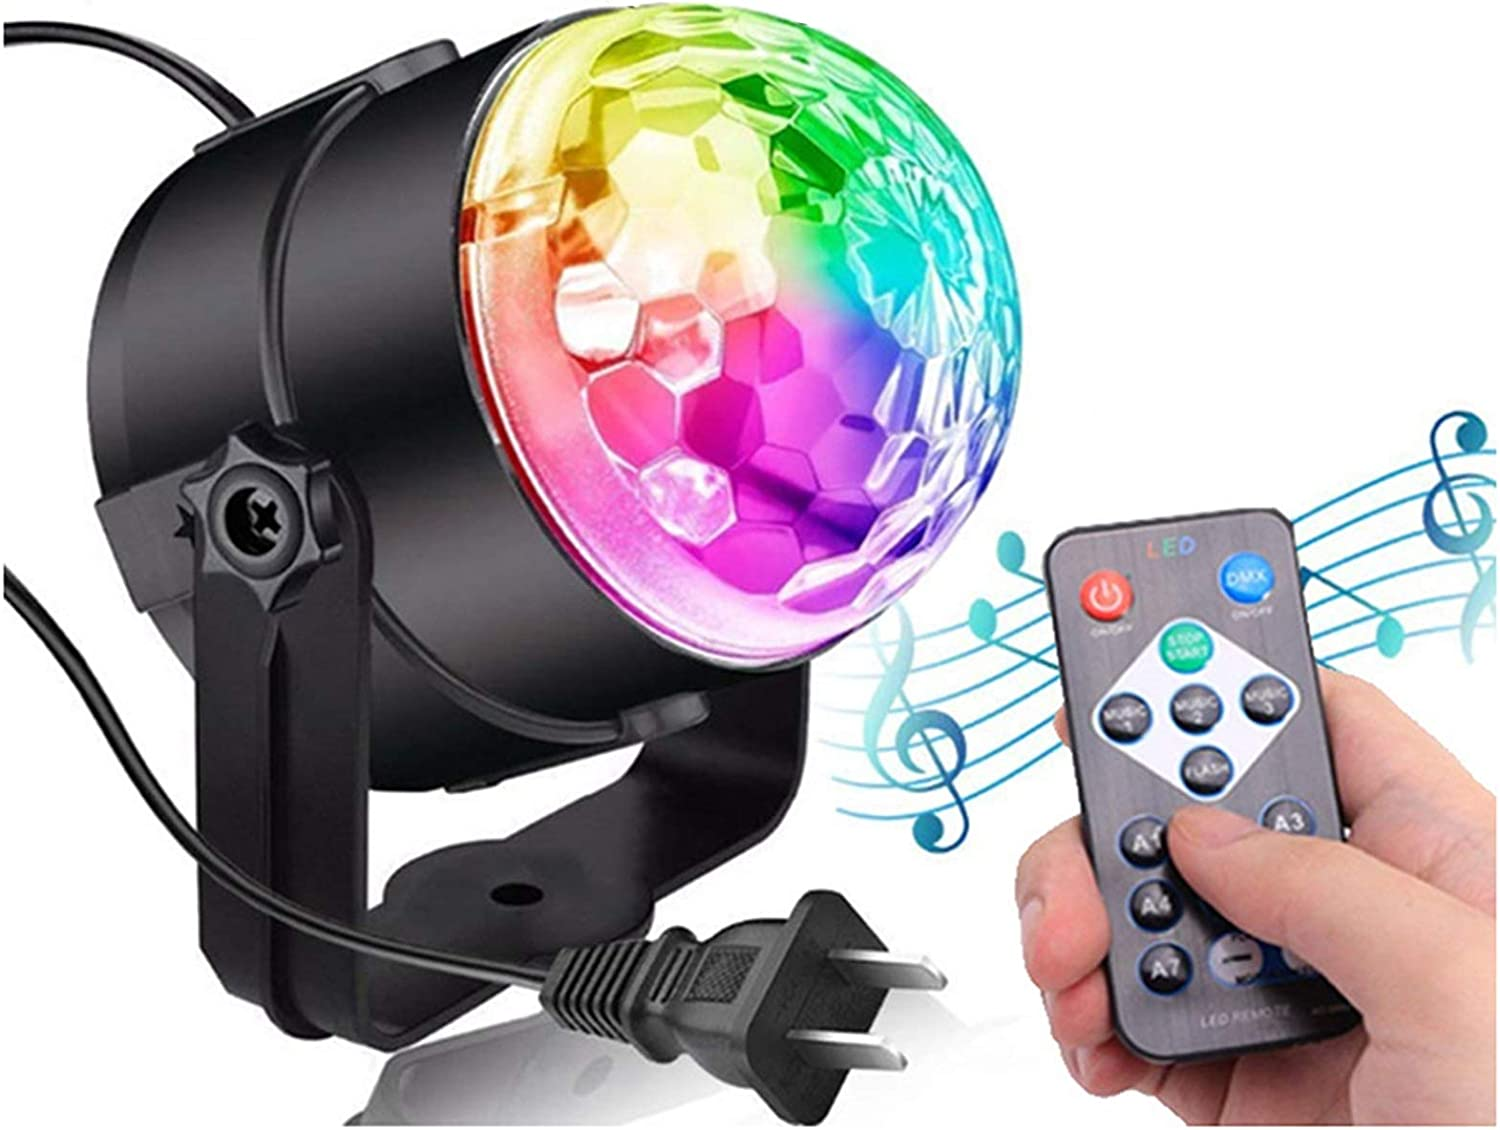 BZGKNUL Disco Lights with Remote Christmas for New Free Shipping Lighting and Dj Sale Special Price